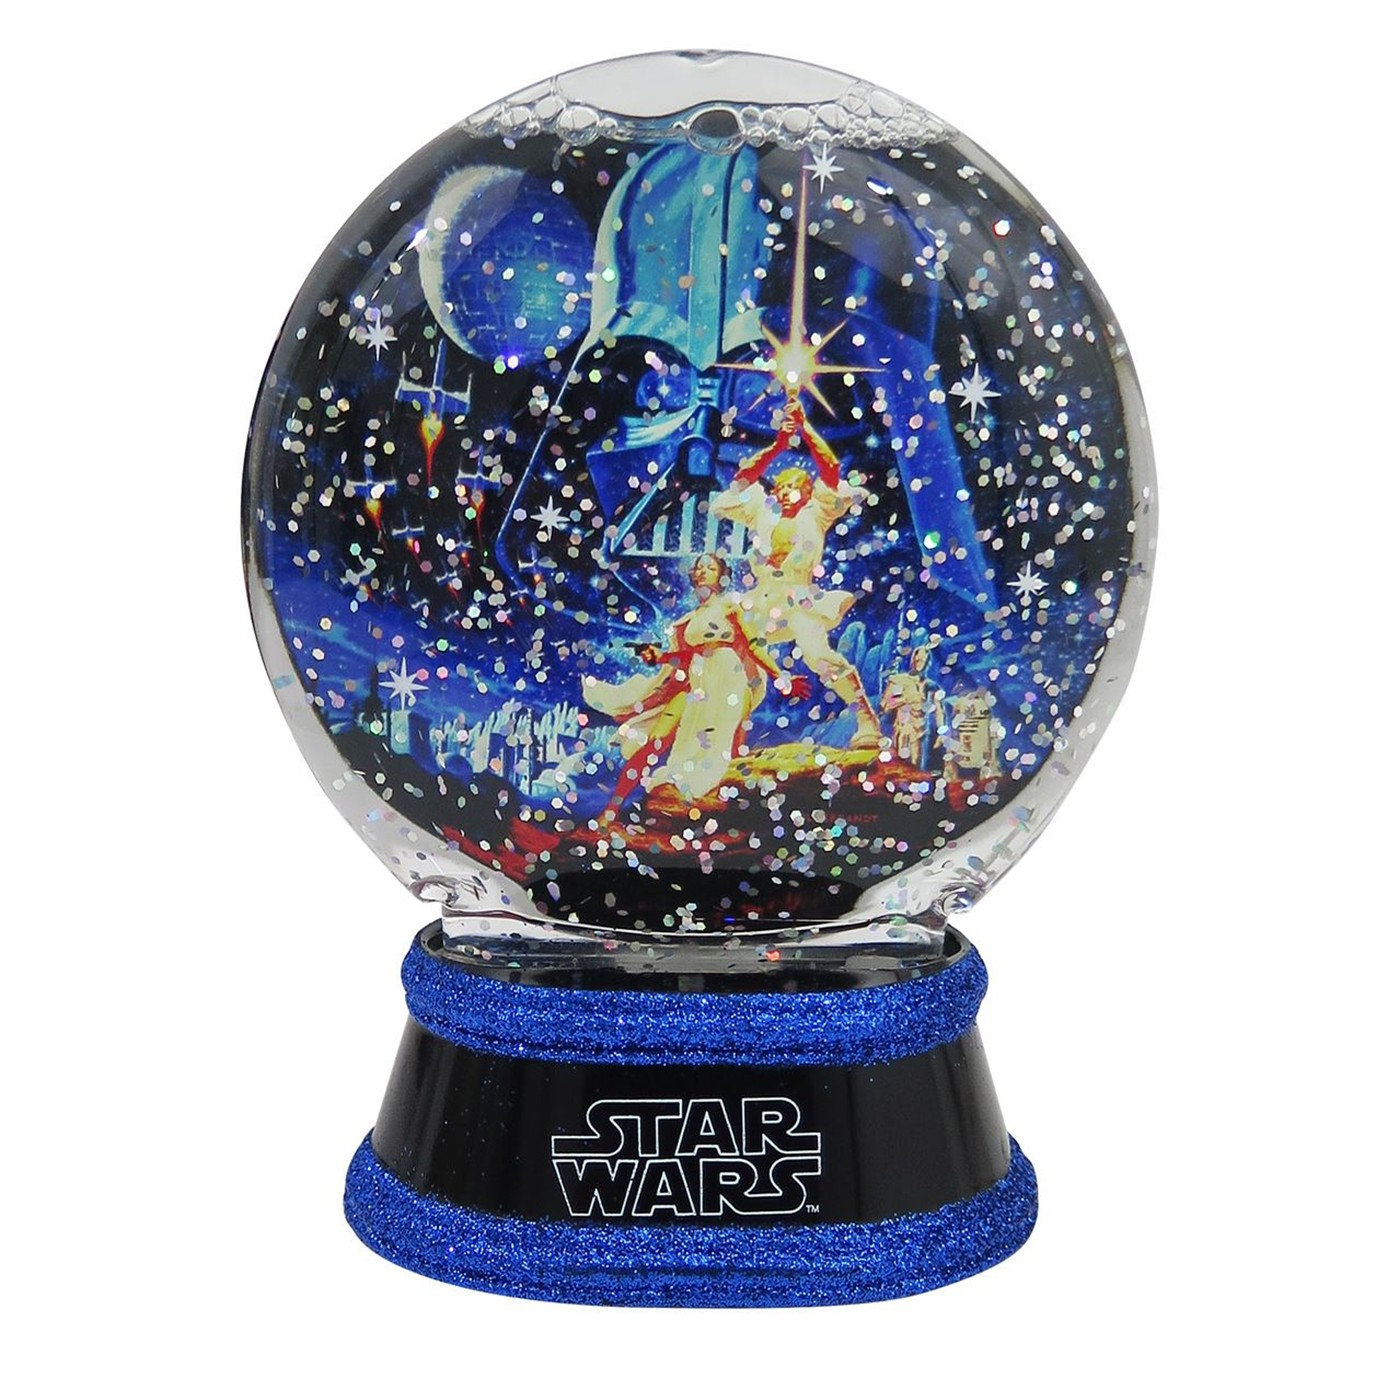 Star Wars New Hope Snow Globe